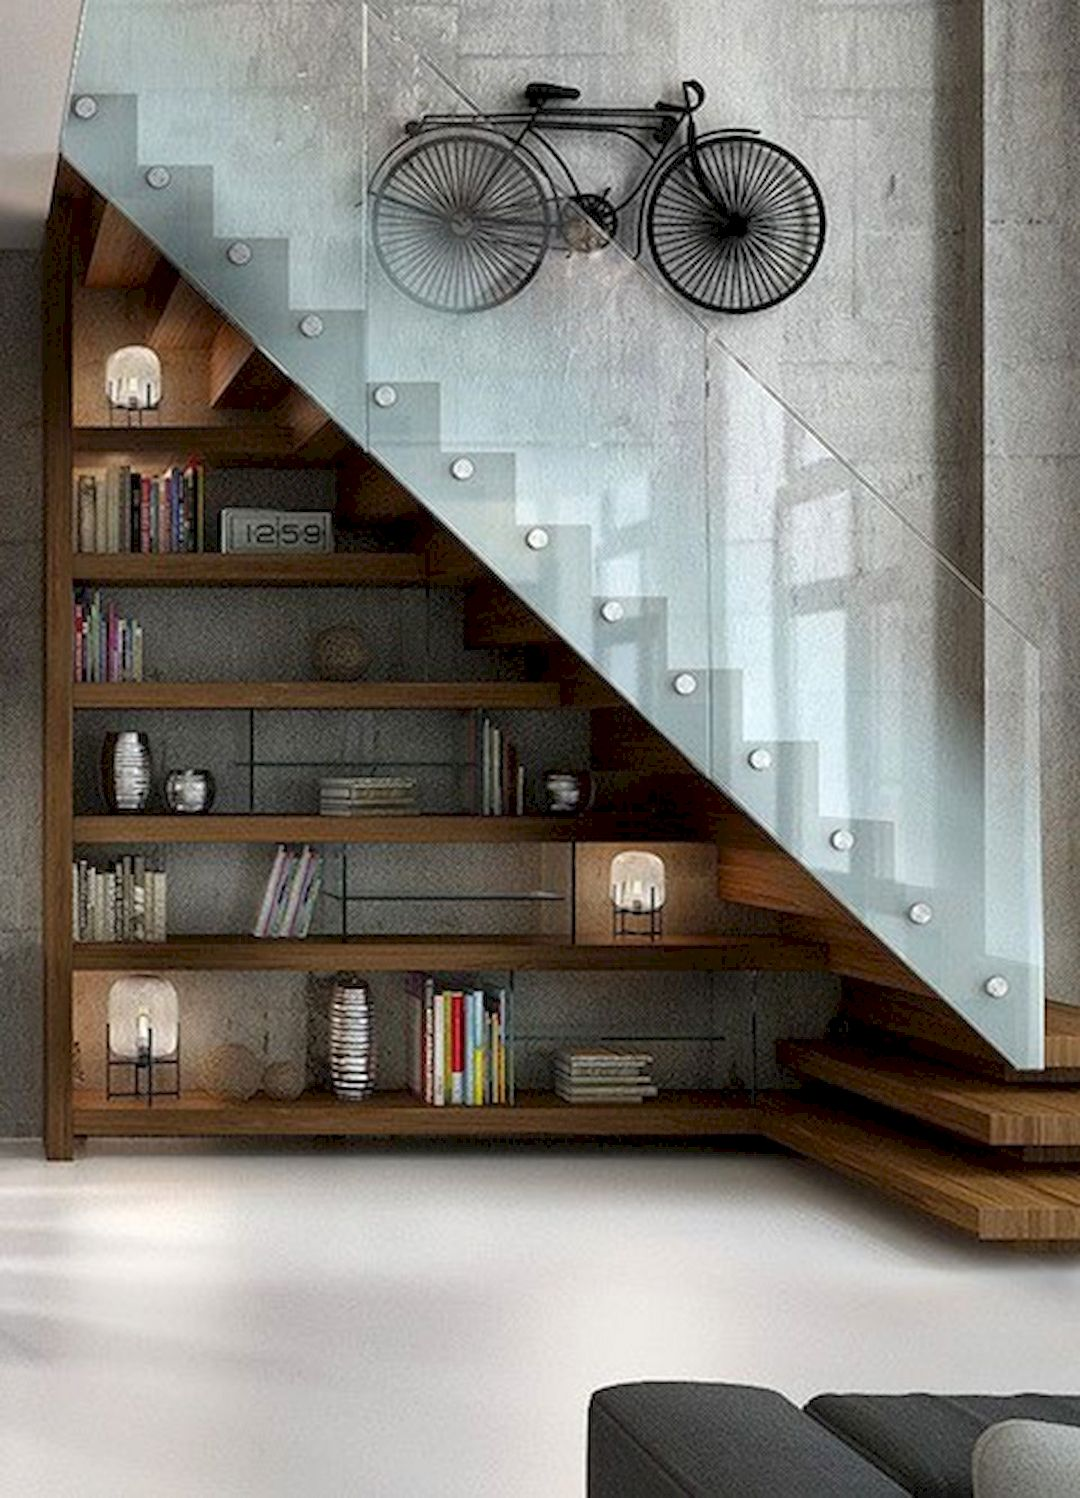 /Uploads/_thumbs/images/SanPham/super-cool-modern-home-or-apartment-interior-idea-7.jpg